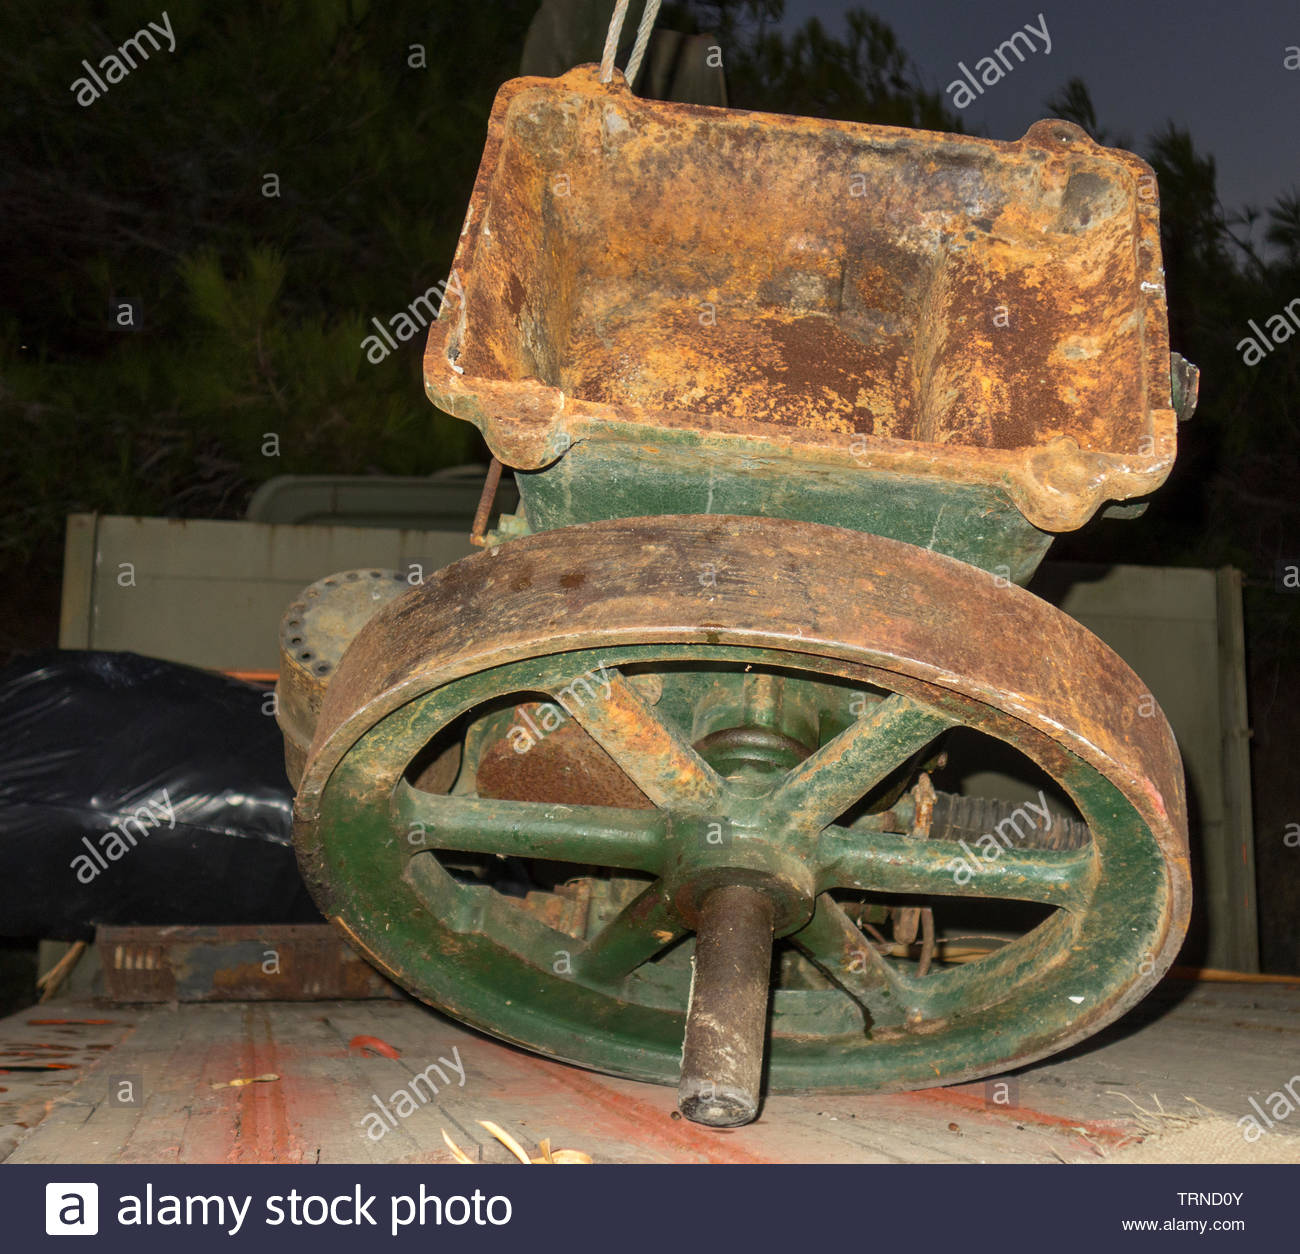 Europe, Greece, 2018: View Of Ancient One Cylinder Diesel Engine From British Factory - Stock Image